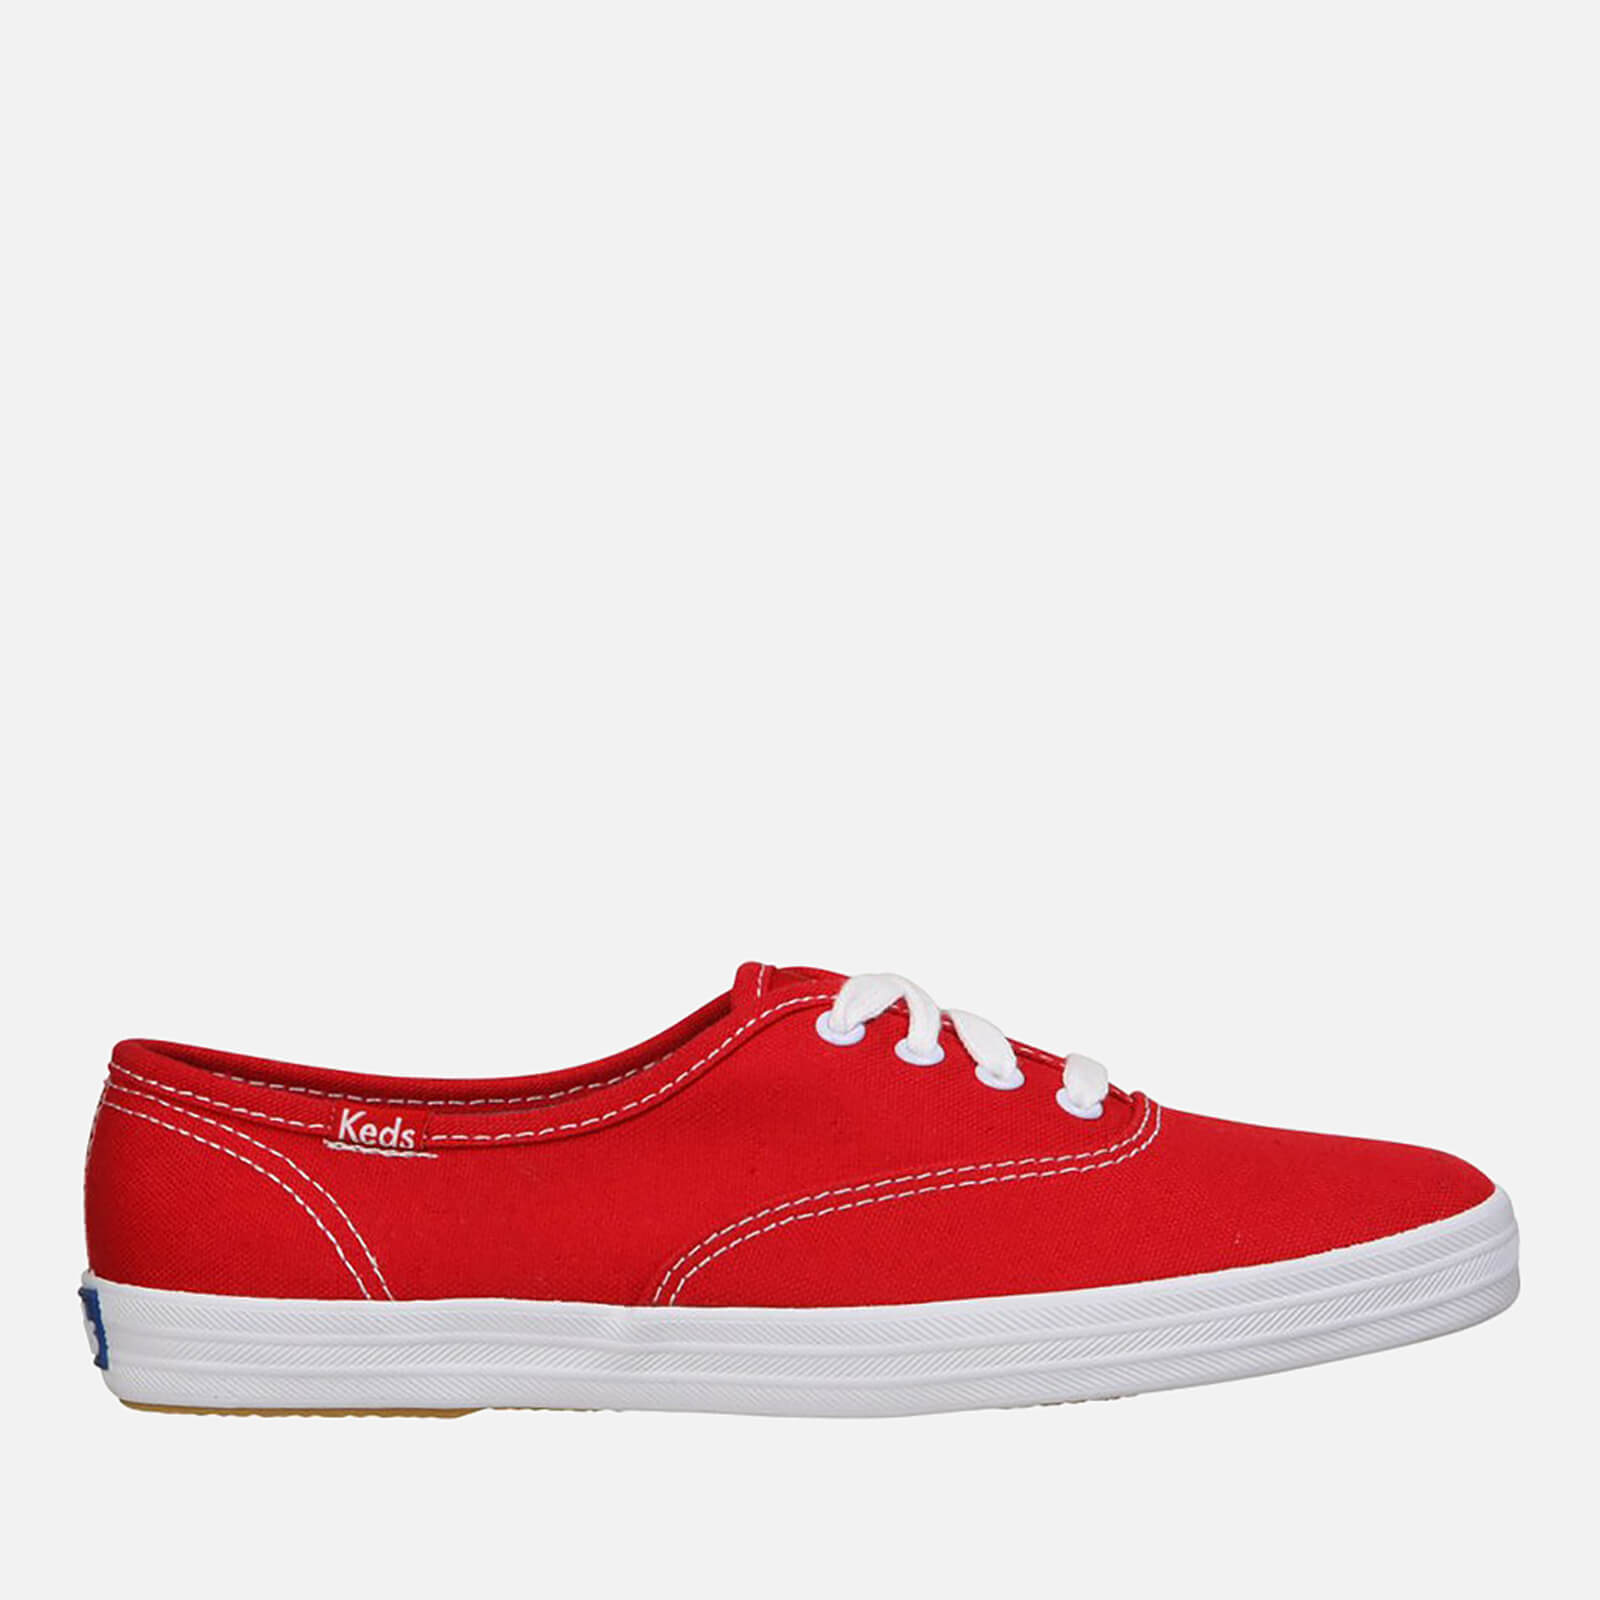 3770bdef32051 Keds Women s Champion CVO Core Canvas Trainers - Red